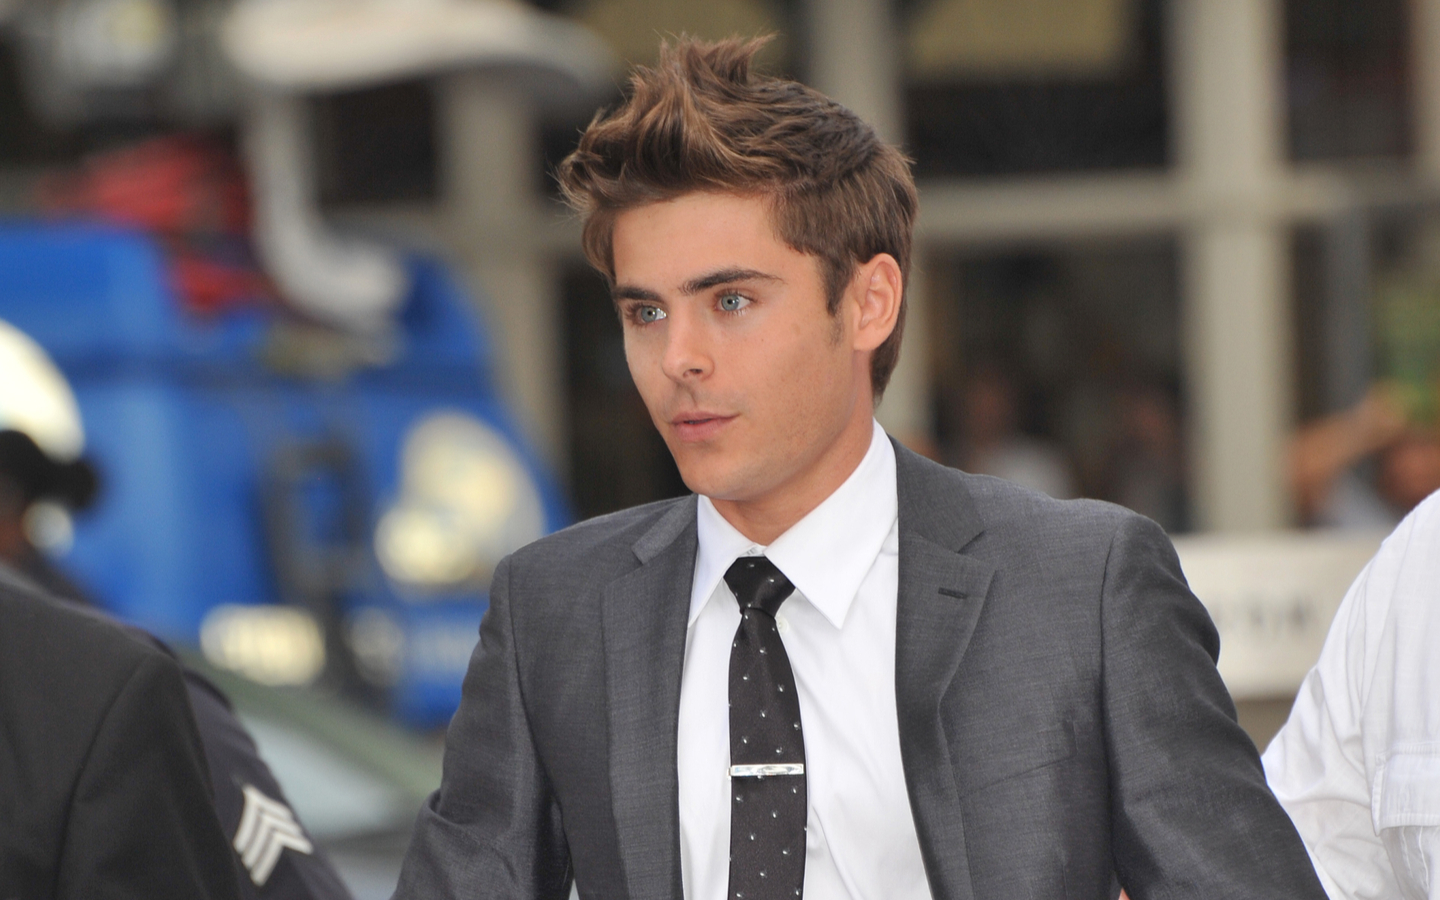 Zac Efron is a famous Disney Star